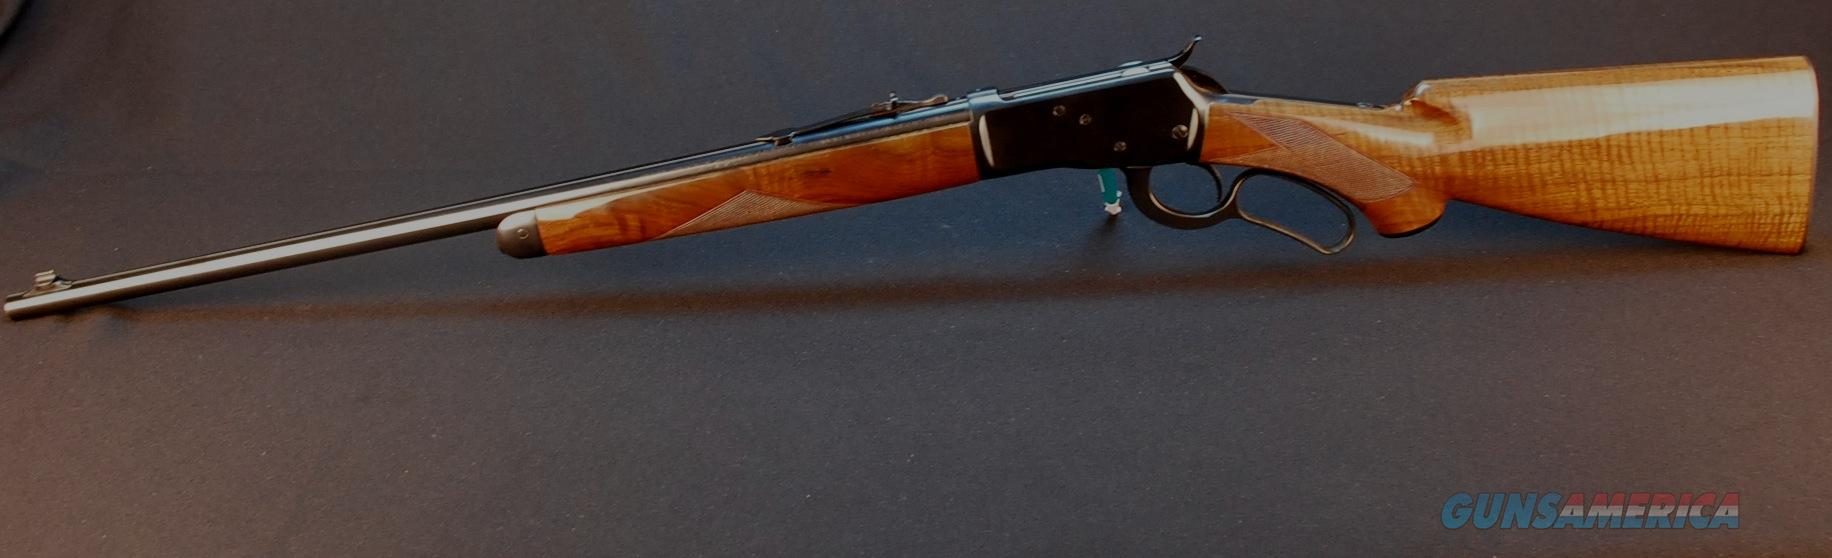 BROWNING Model 53 - Fiddleback Extreme Beauty  Guns > Rifles > Browning Rifles > Lever Action